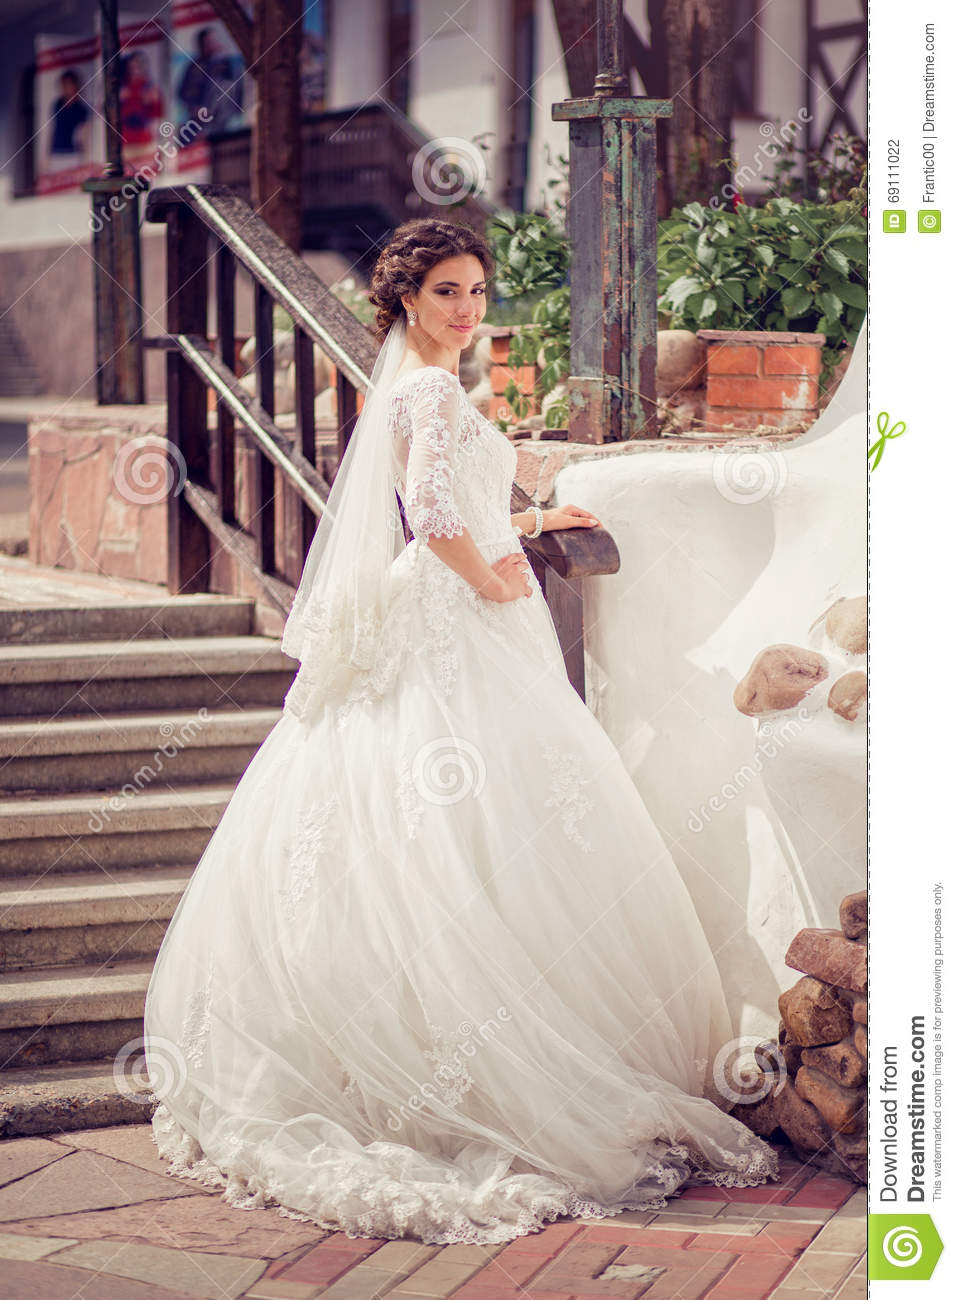 Elegant Bride In Wedding Dress With Dipped Hem In Full Length On A